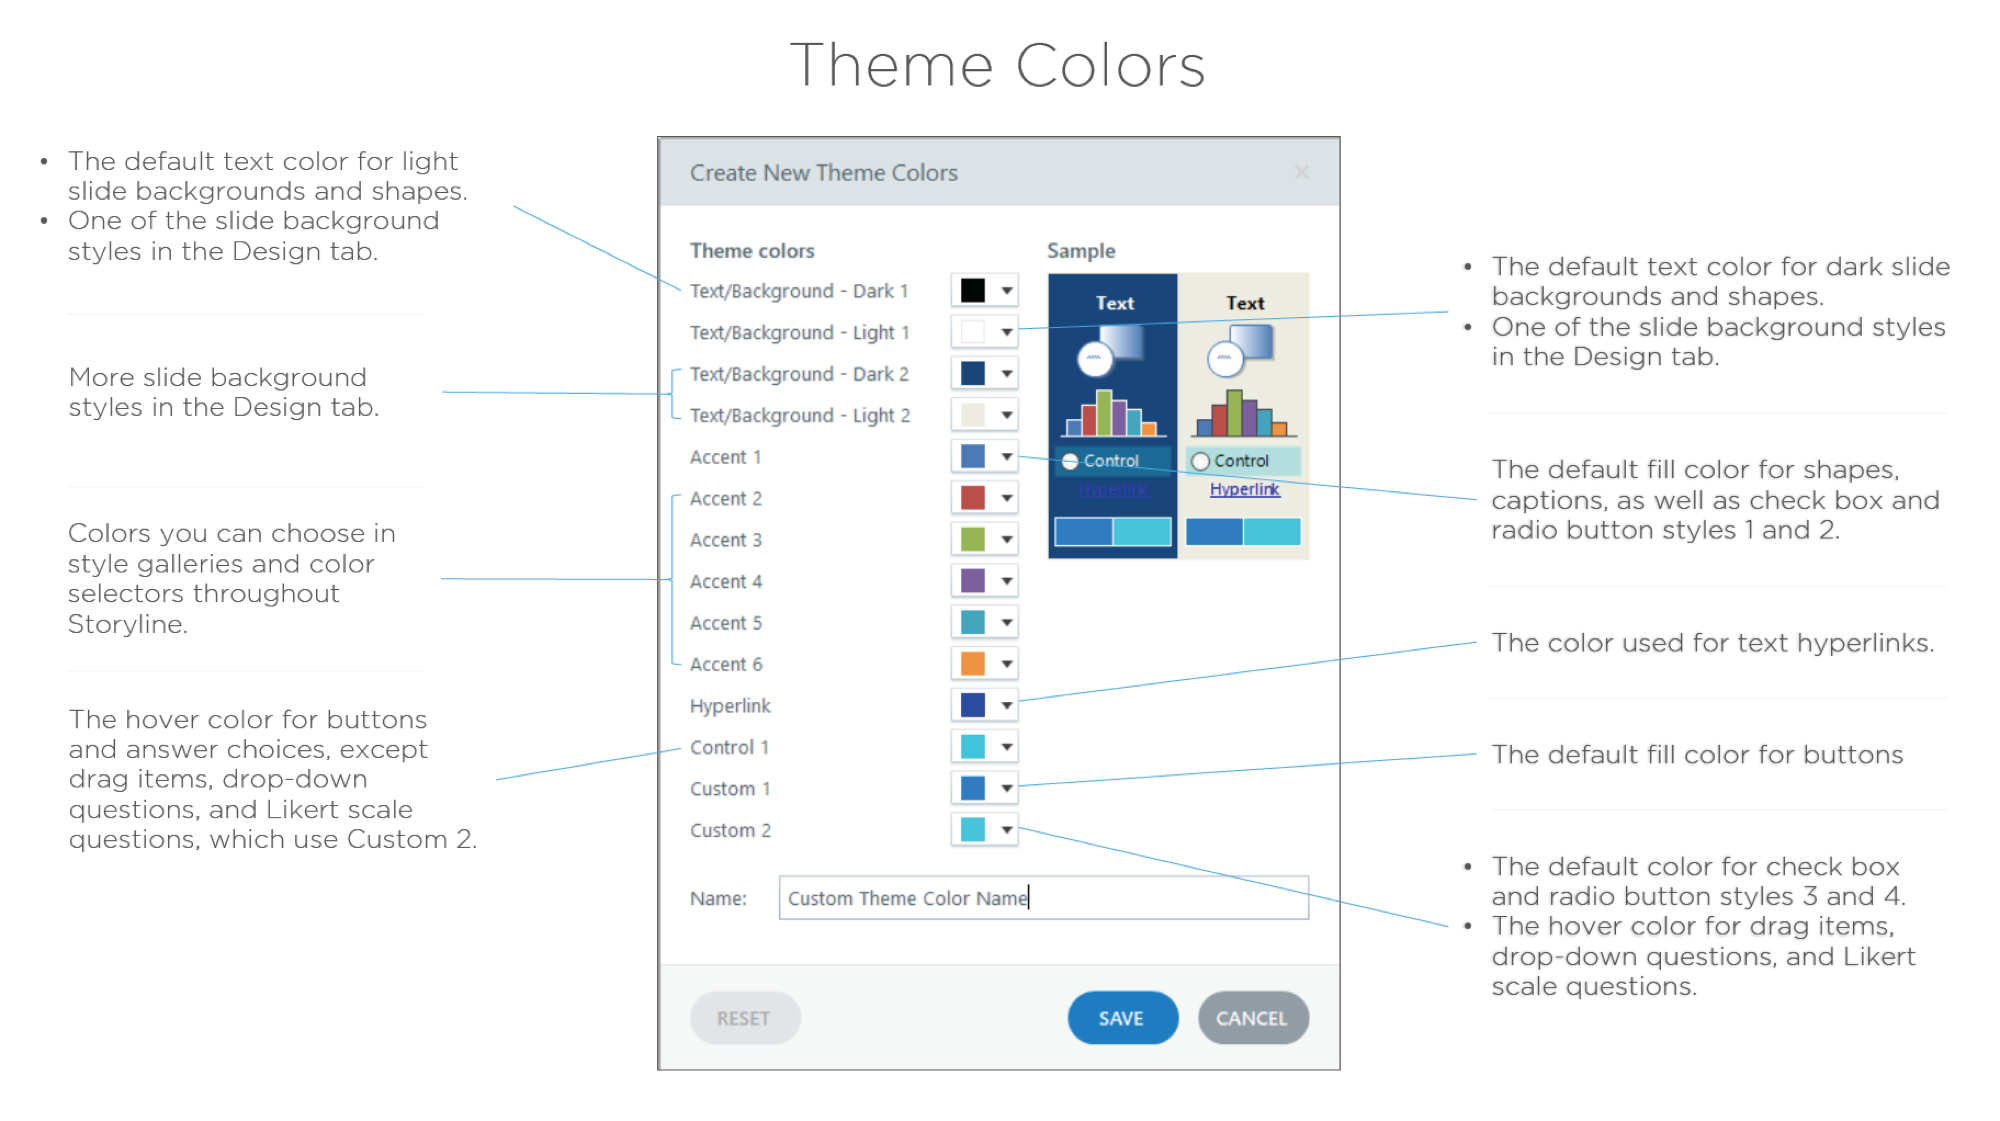 Storyline Theme Colors Screenshot